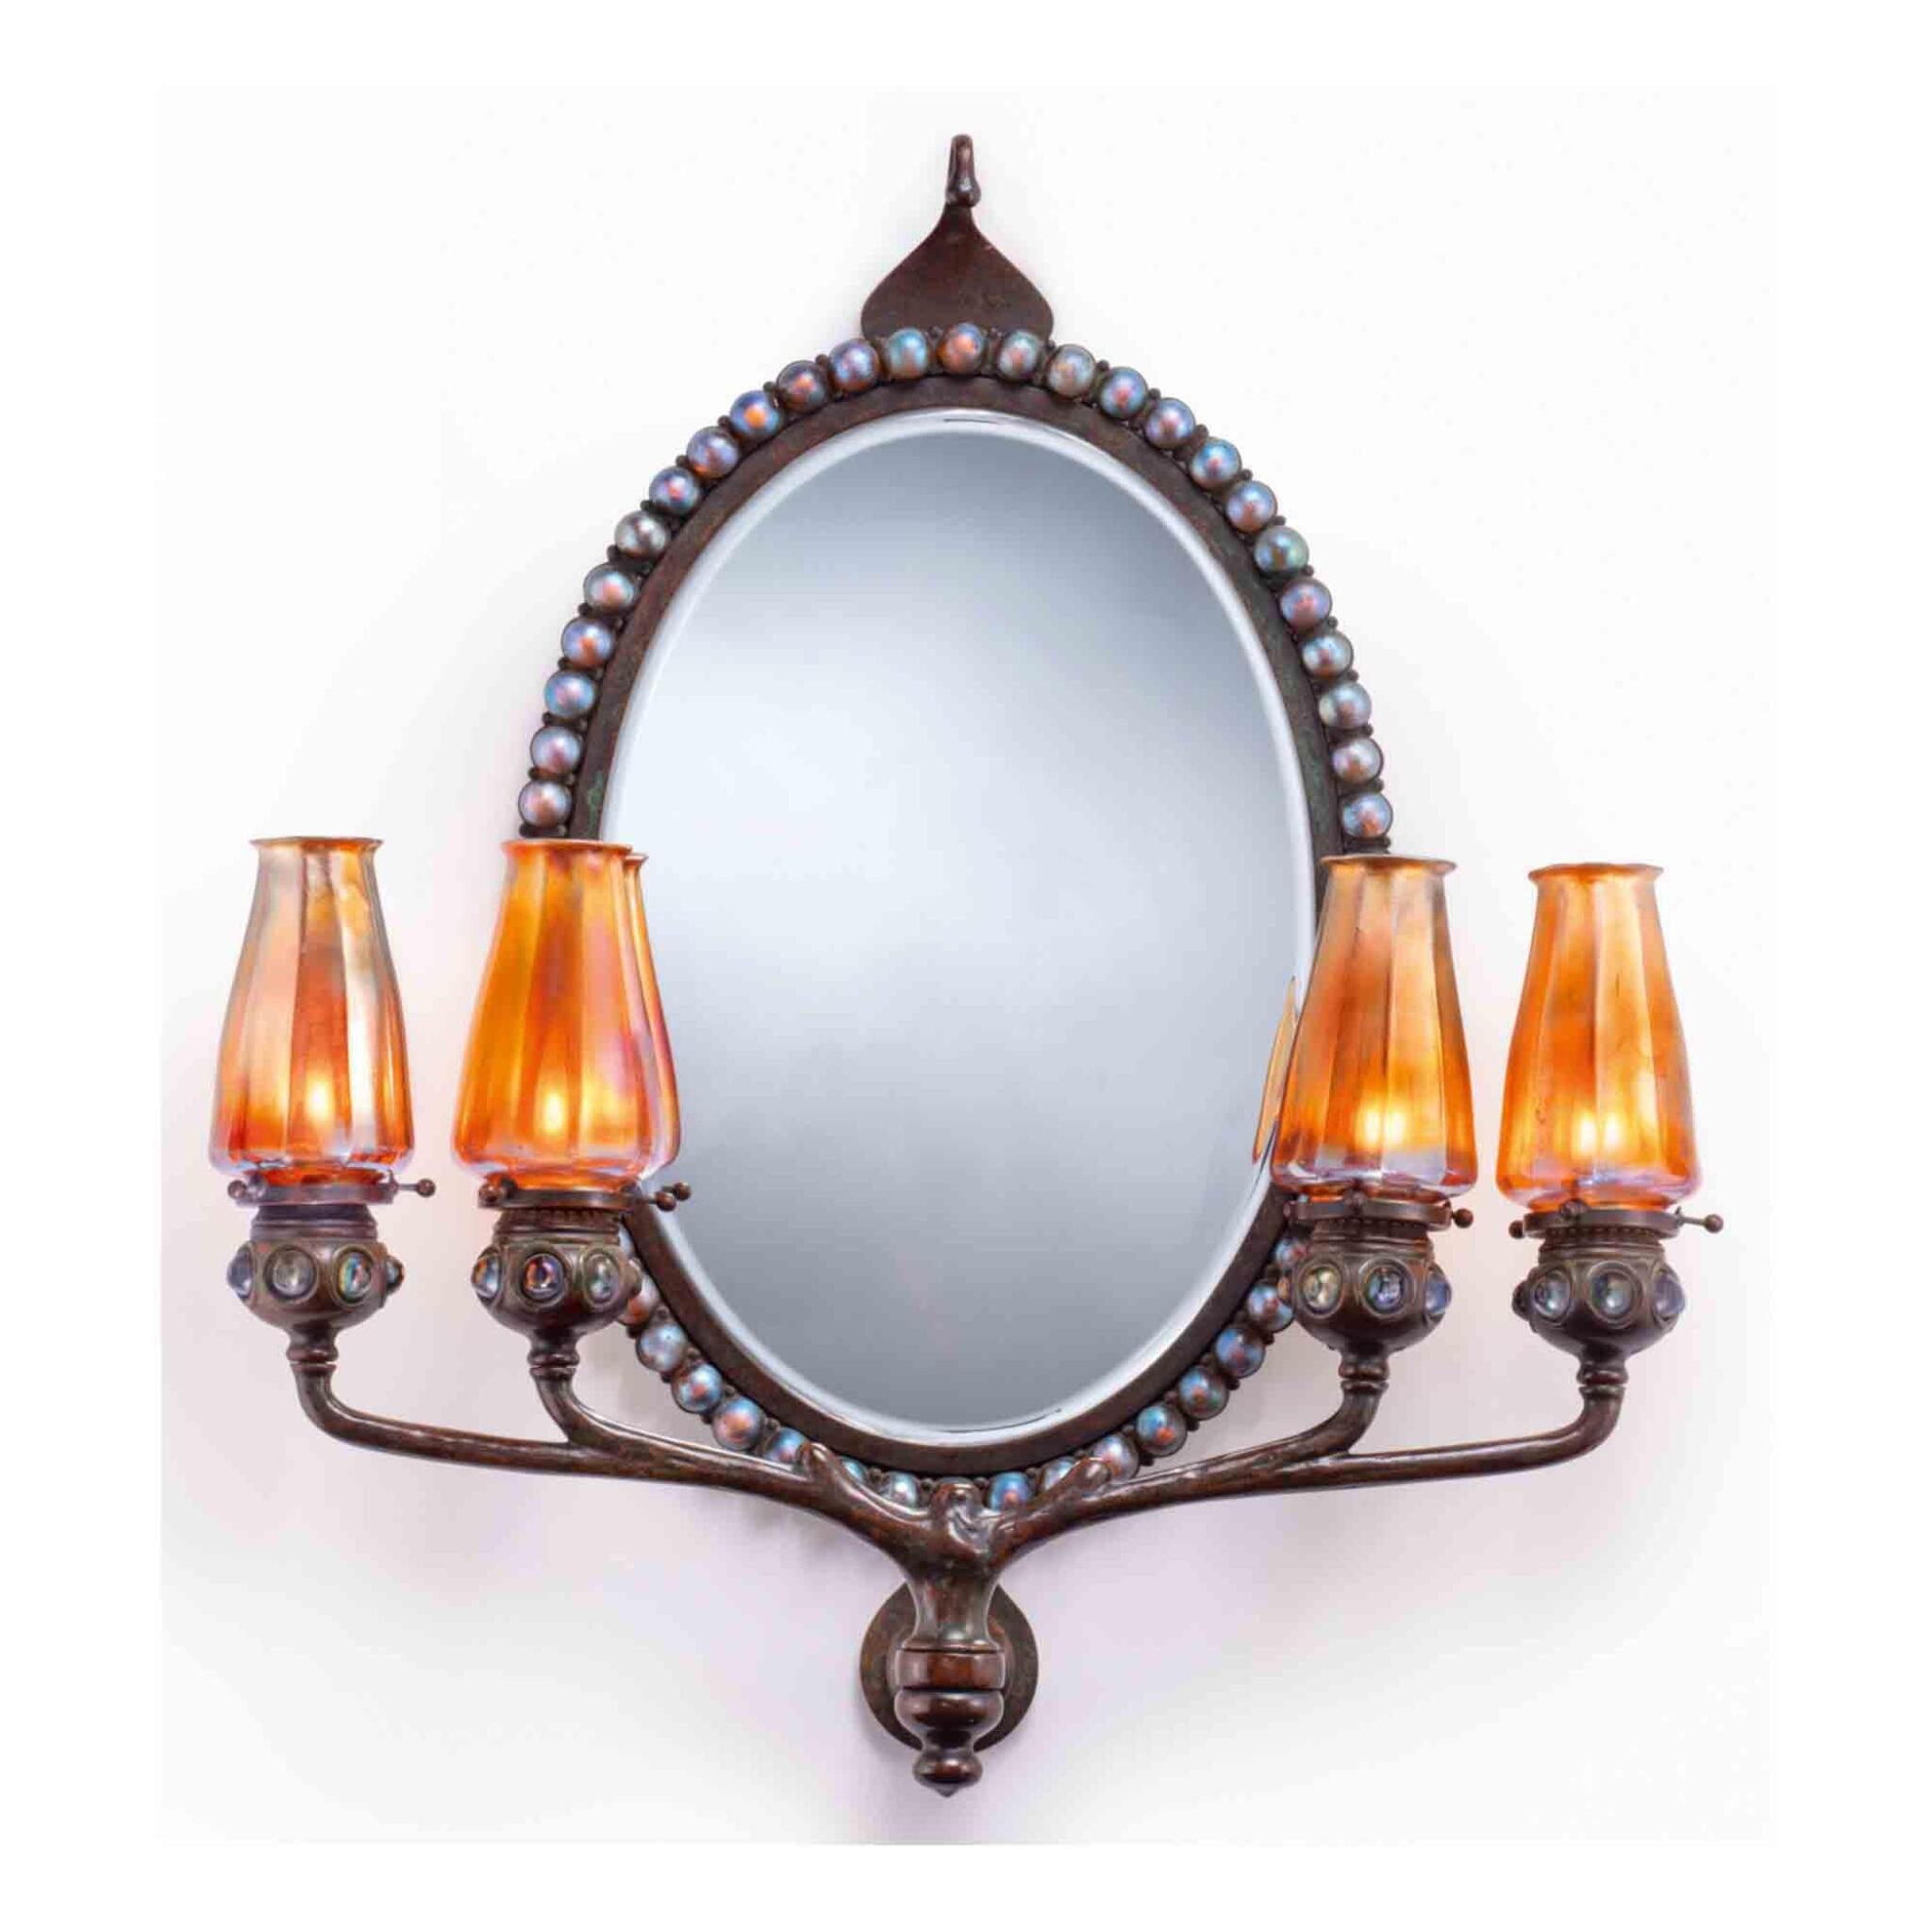 View full screen - View 1 of Lot 5. A Rare Jeweled Wall Mirror with Four-Light Candelabrum.